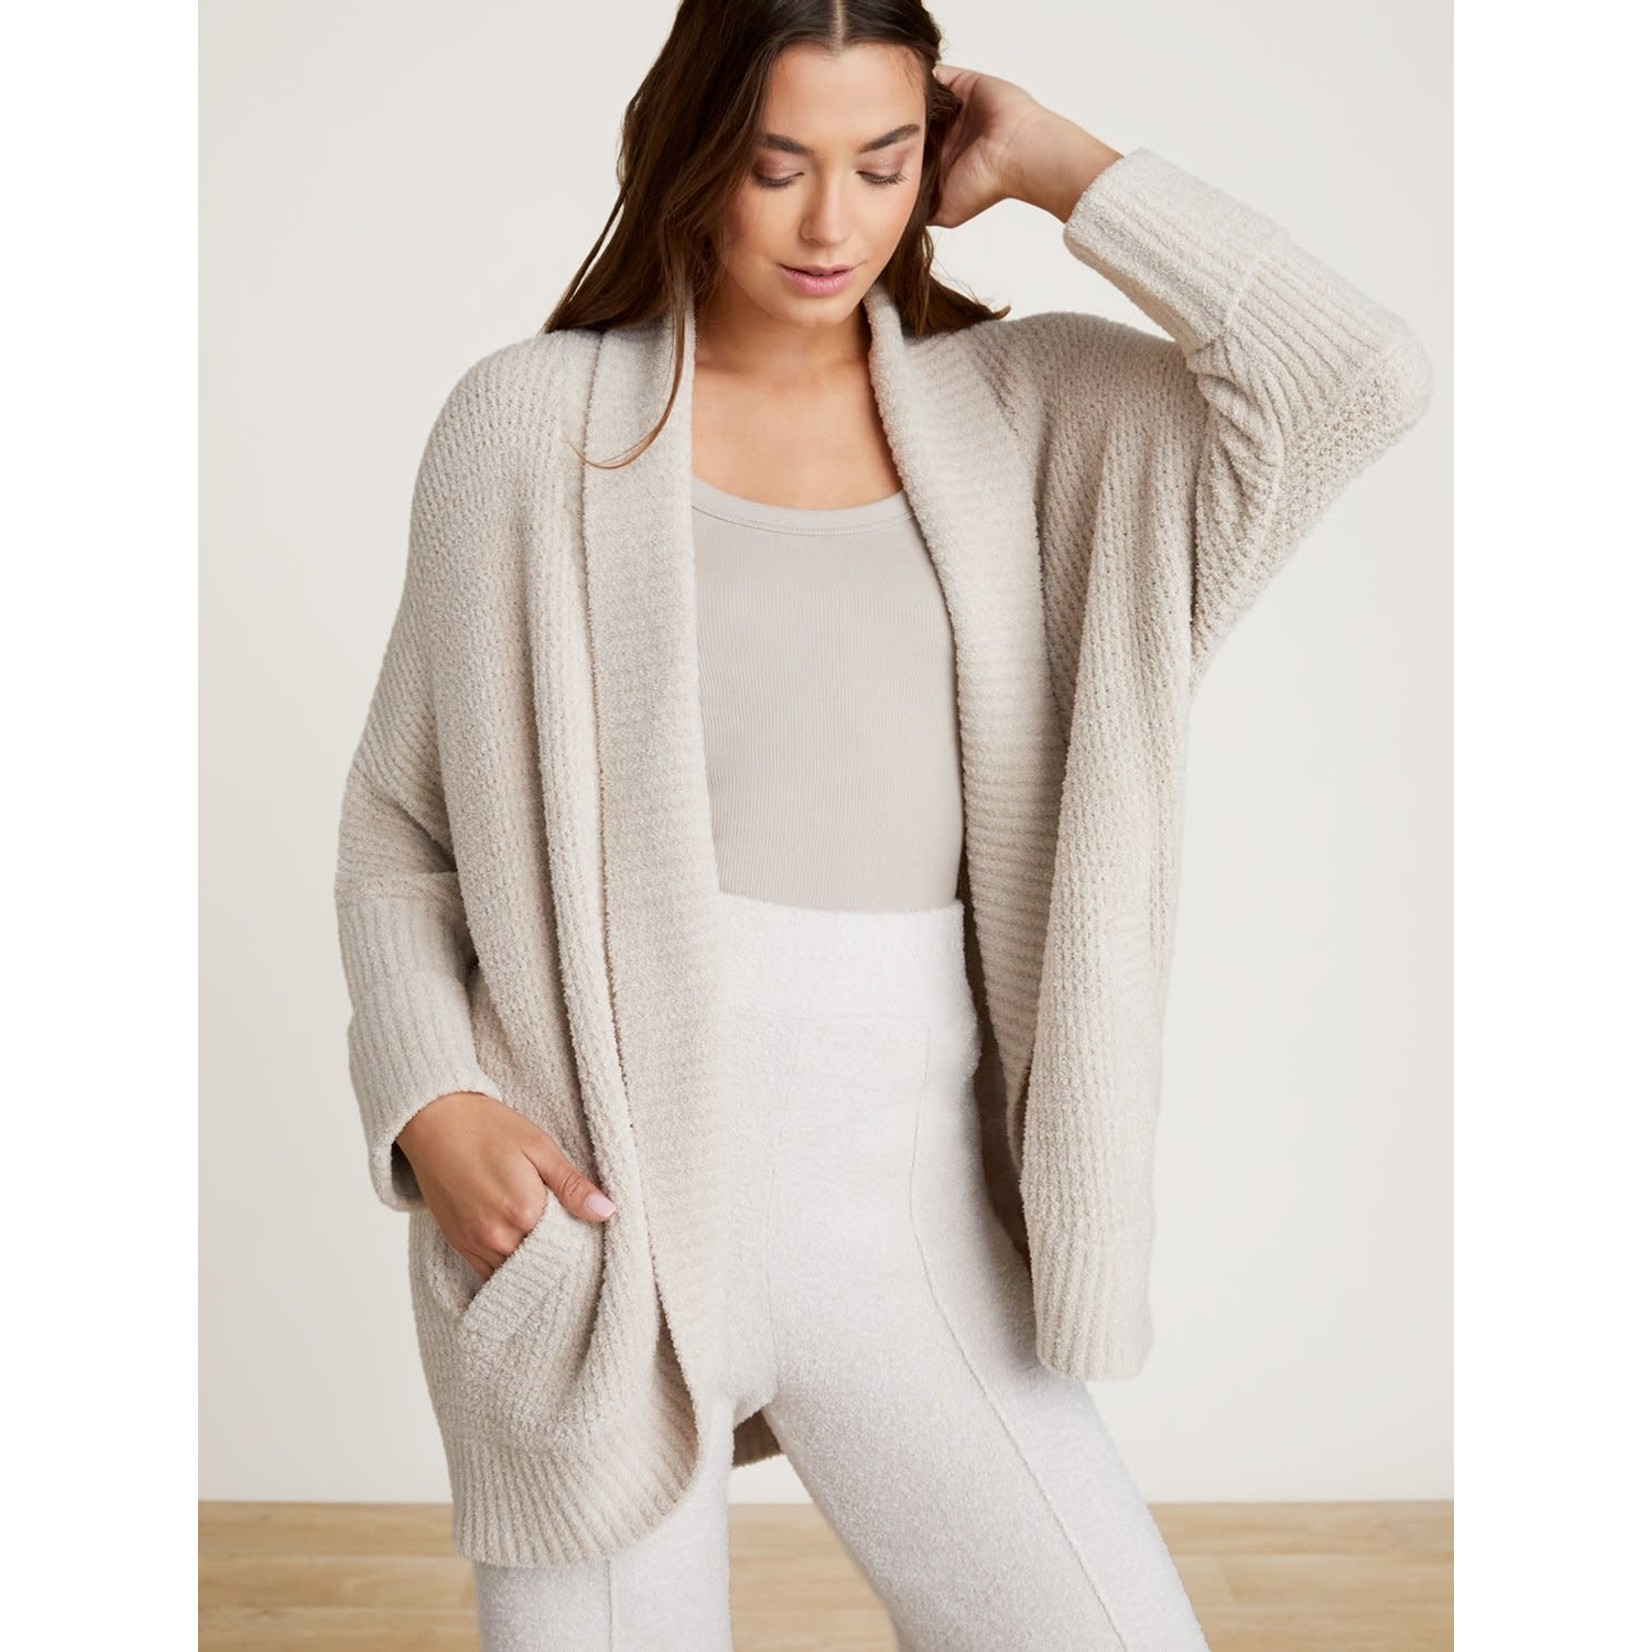 Barefoot Dreams CozyChic Lite Waffle Cocoon Cardi in Stone